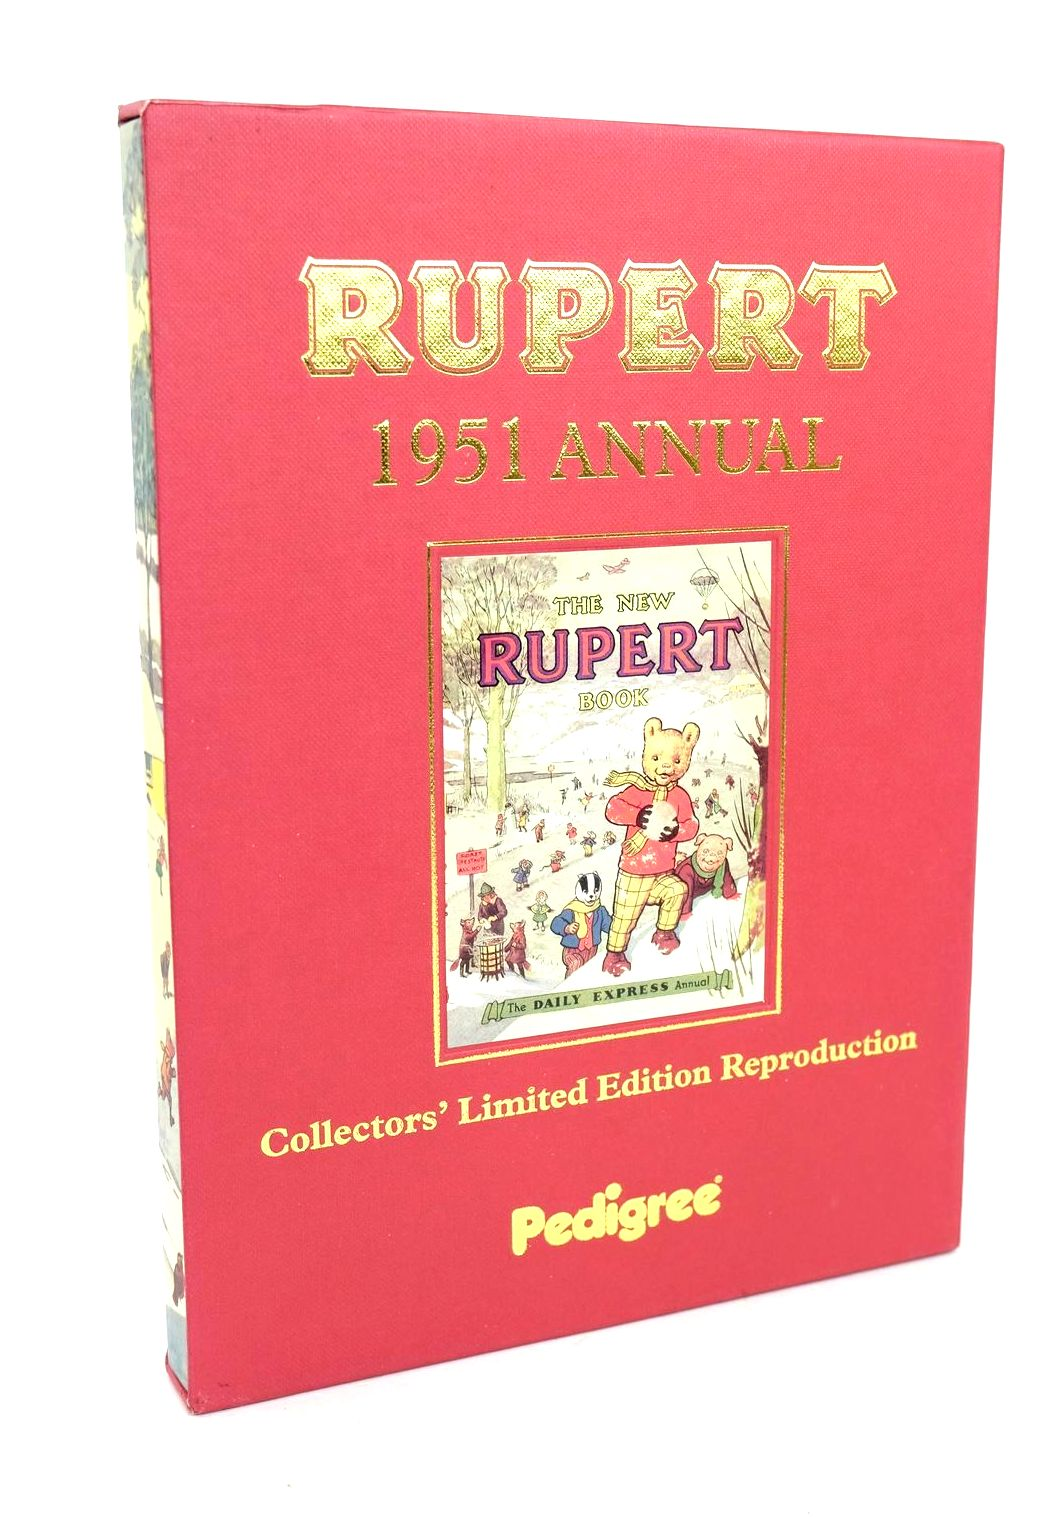 Photo of RUPERT ANNUAL 1951 (FACSIMILE) - THE NEW RUPERT BOOK written by Bestall, Alfred illustrated by Bestall, Alfred published by Pedigree Books Limited (STOCK CODE: 1318644)  for sale by Stella & Rose's Books